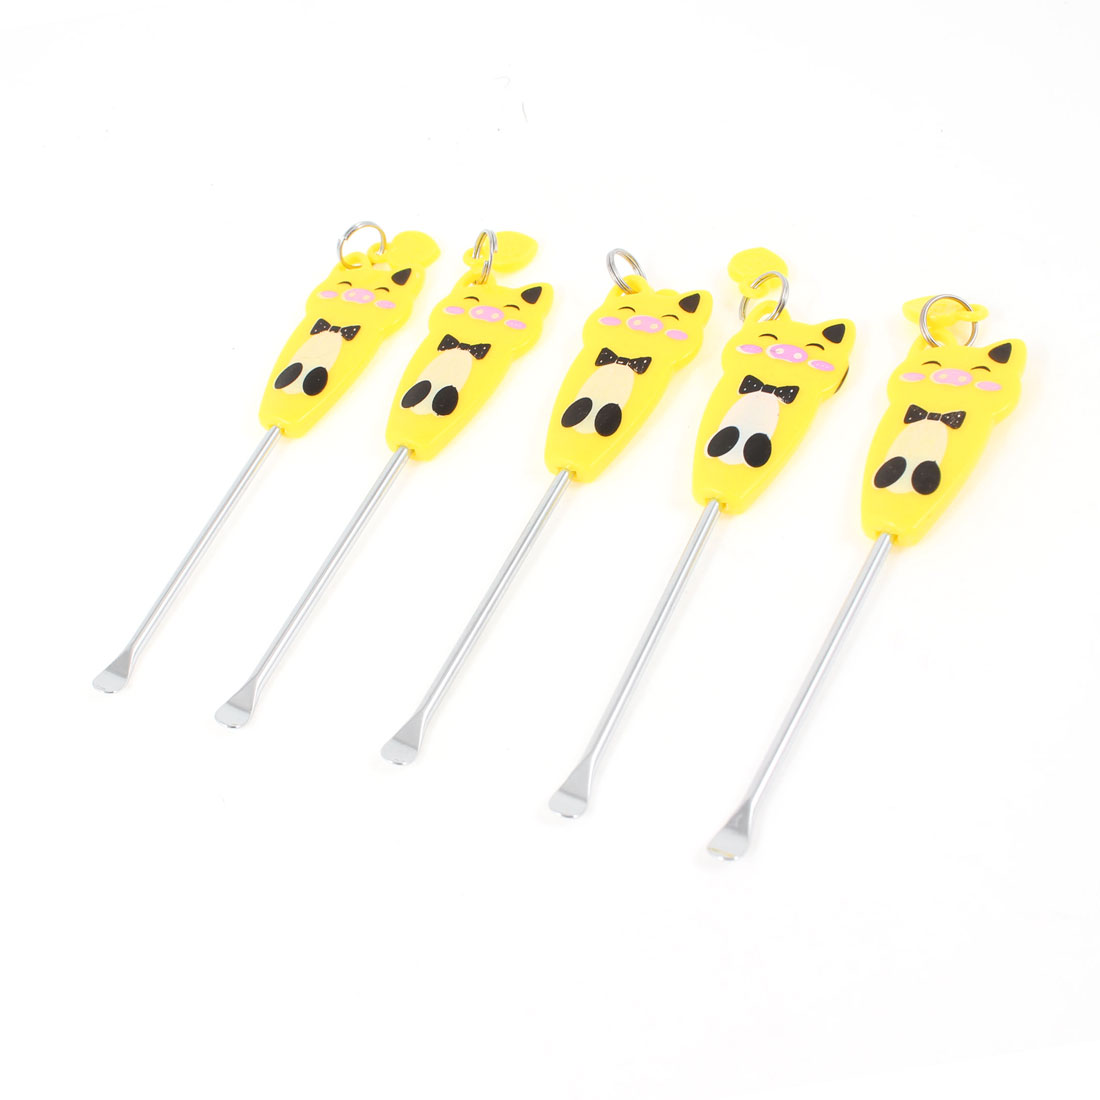 Yellow Black Cartoon Print Metal Ear Wax Remover Ears Cleaner Tools Set 5 Pcs